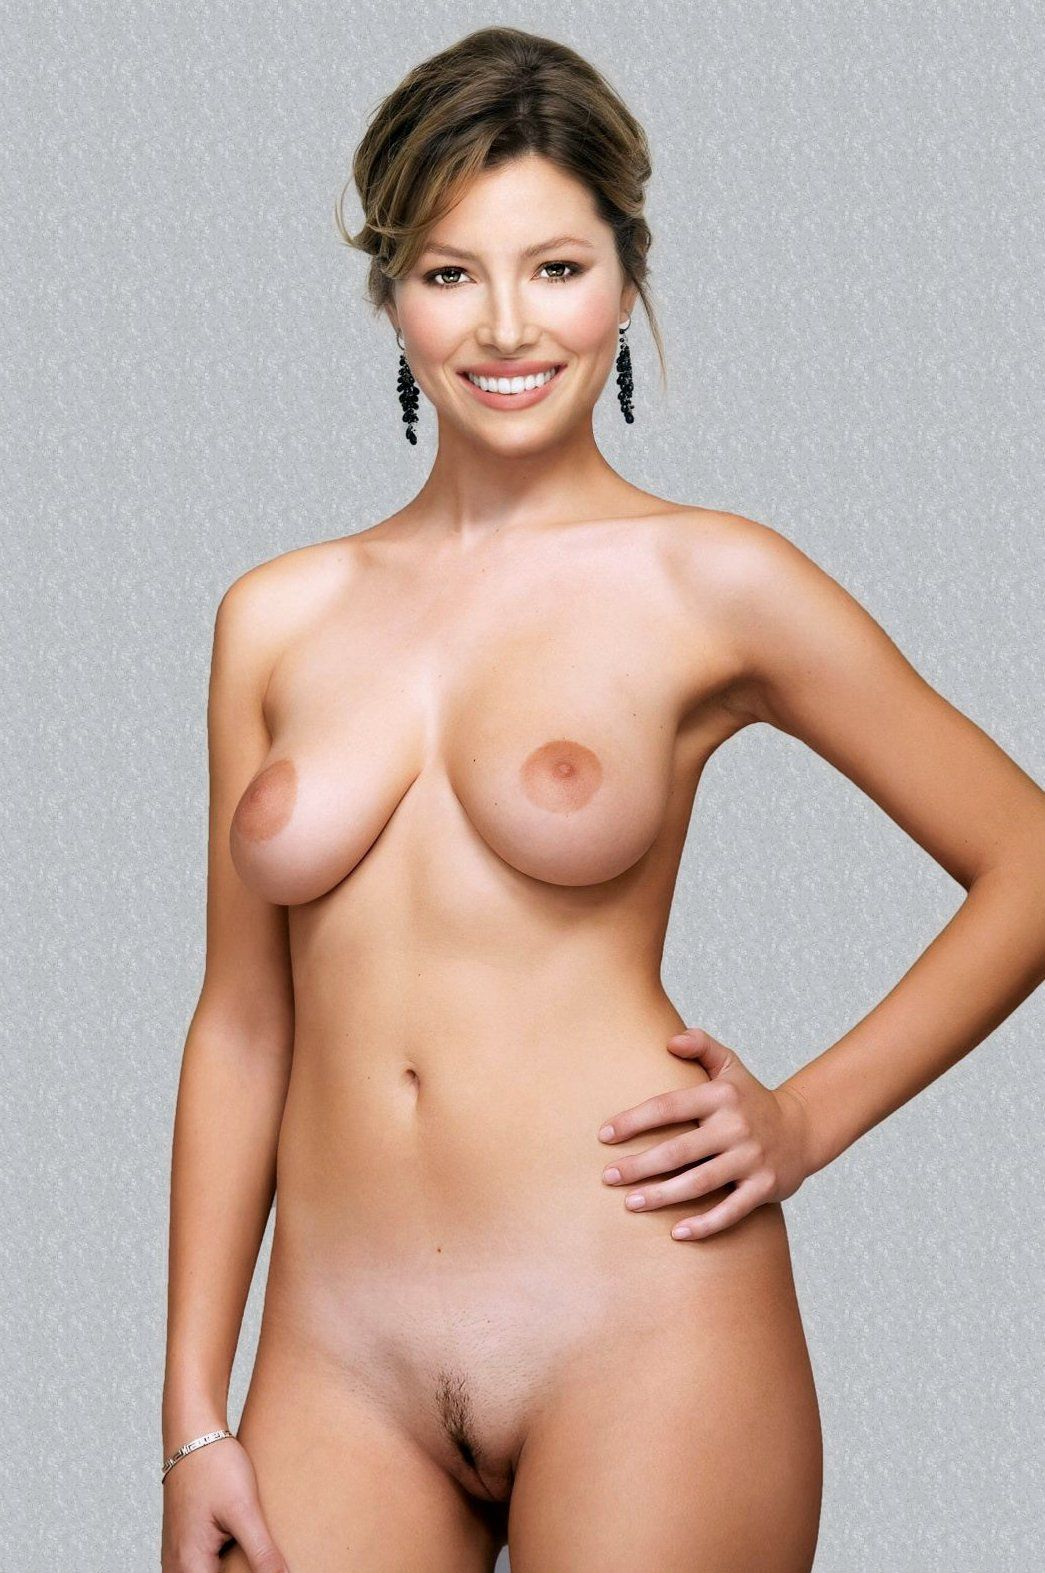 Star trek next generation fake nude